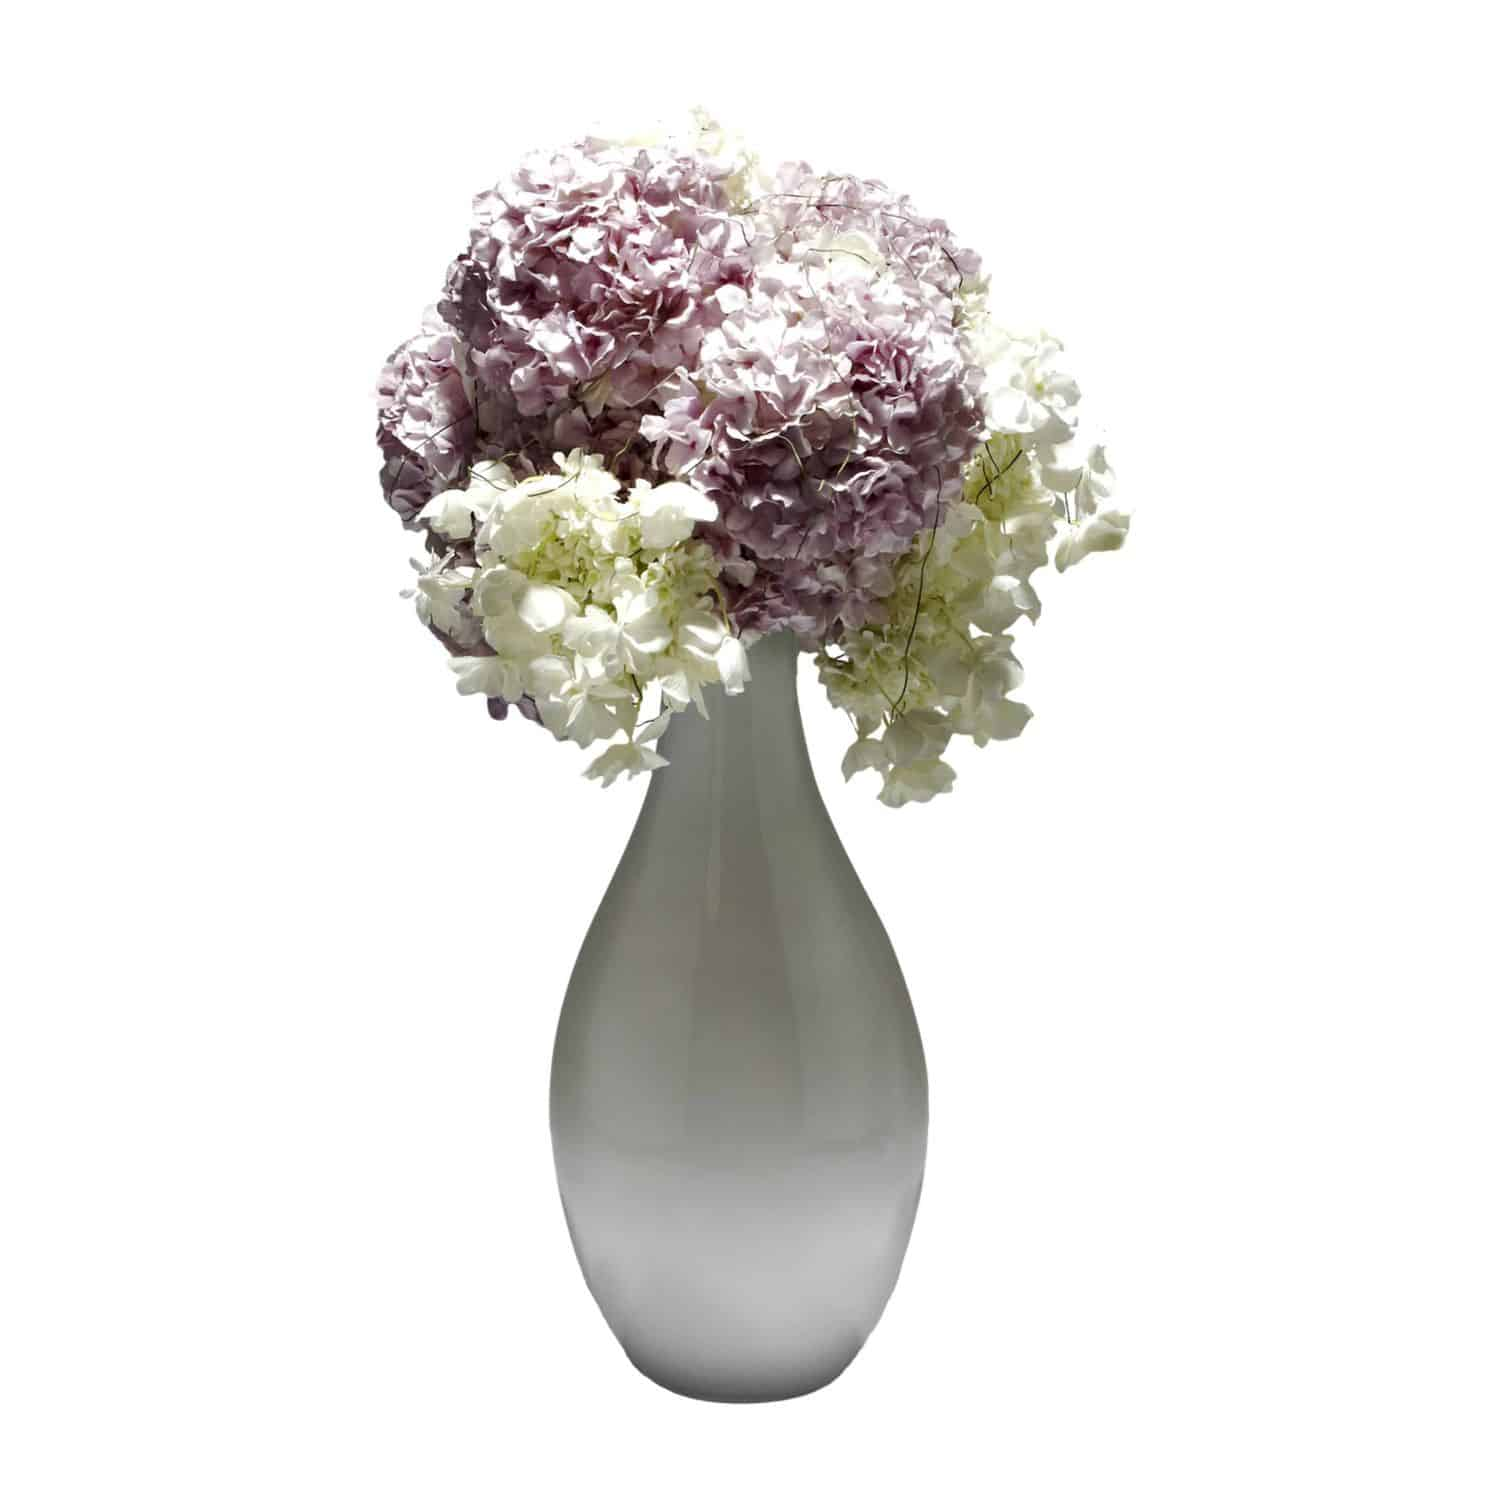 Shop for our beautiful pink & white butterfly hydrangea arrangement. Designed in dome and arranged in a white vase for a chic modern look.